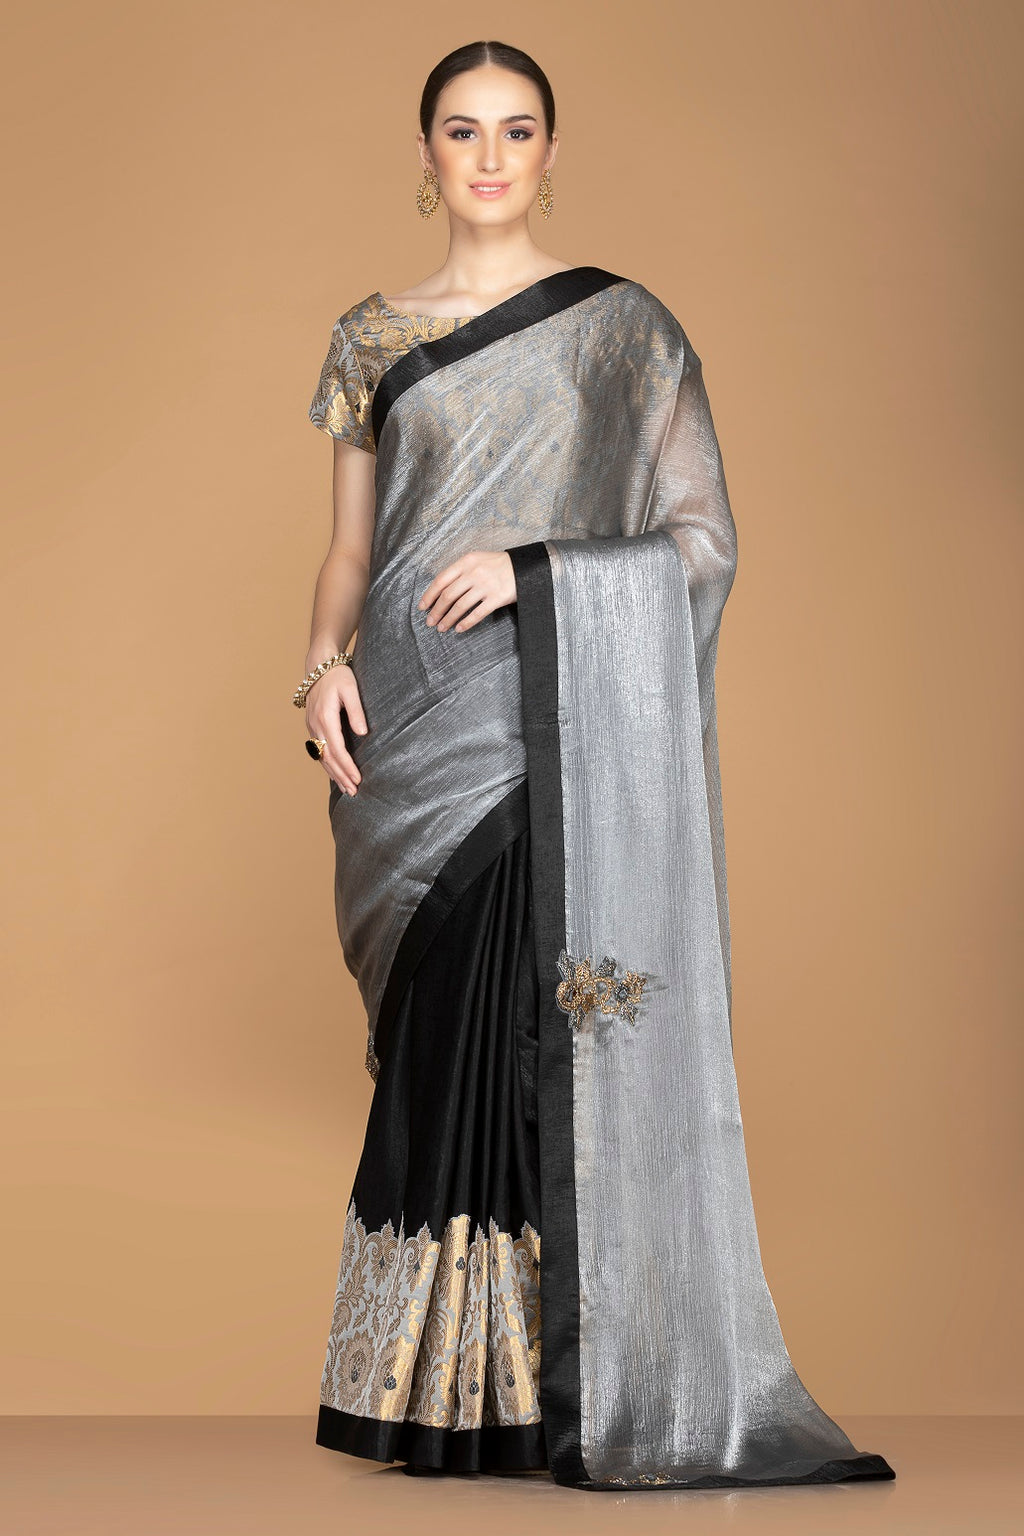 Buy elegant black and grey embroidered crepe saree online in USA with grey saree blouse. Keep your ethnic fashion on point with exquisite designer sarees, partywear sarees, embroidered sarees from Pure Elegance Indian fashion boutique in USA.-full view